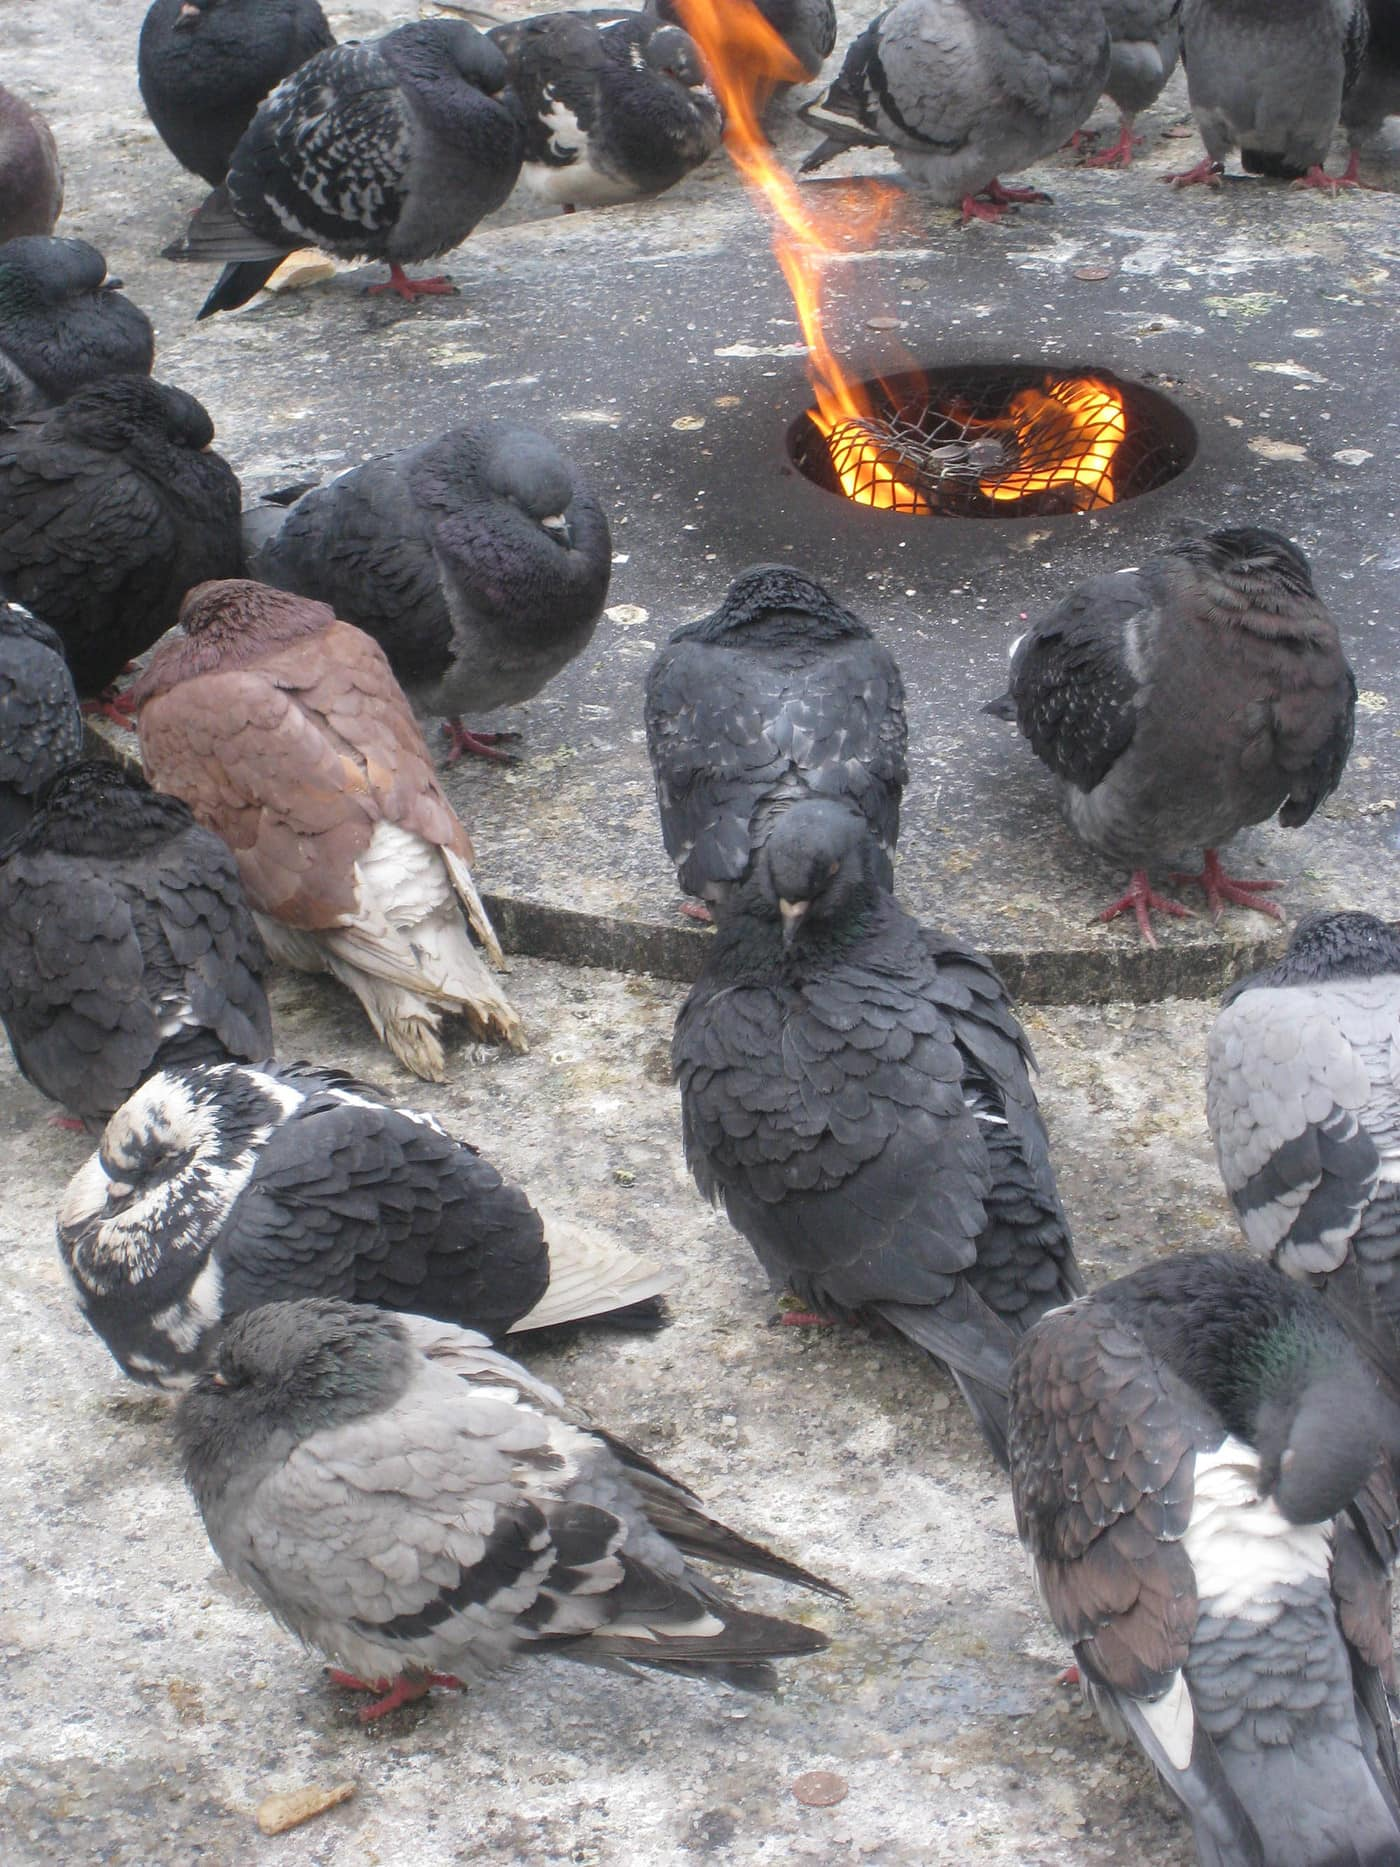 Pigeons outside in the cold